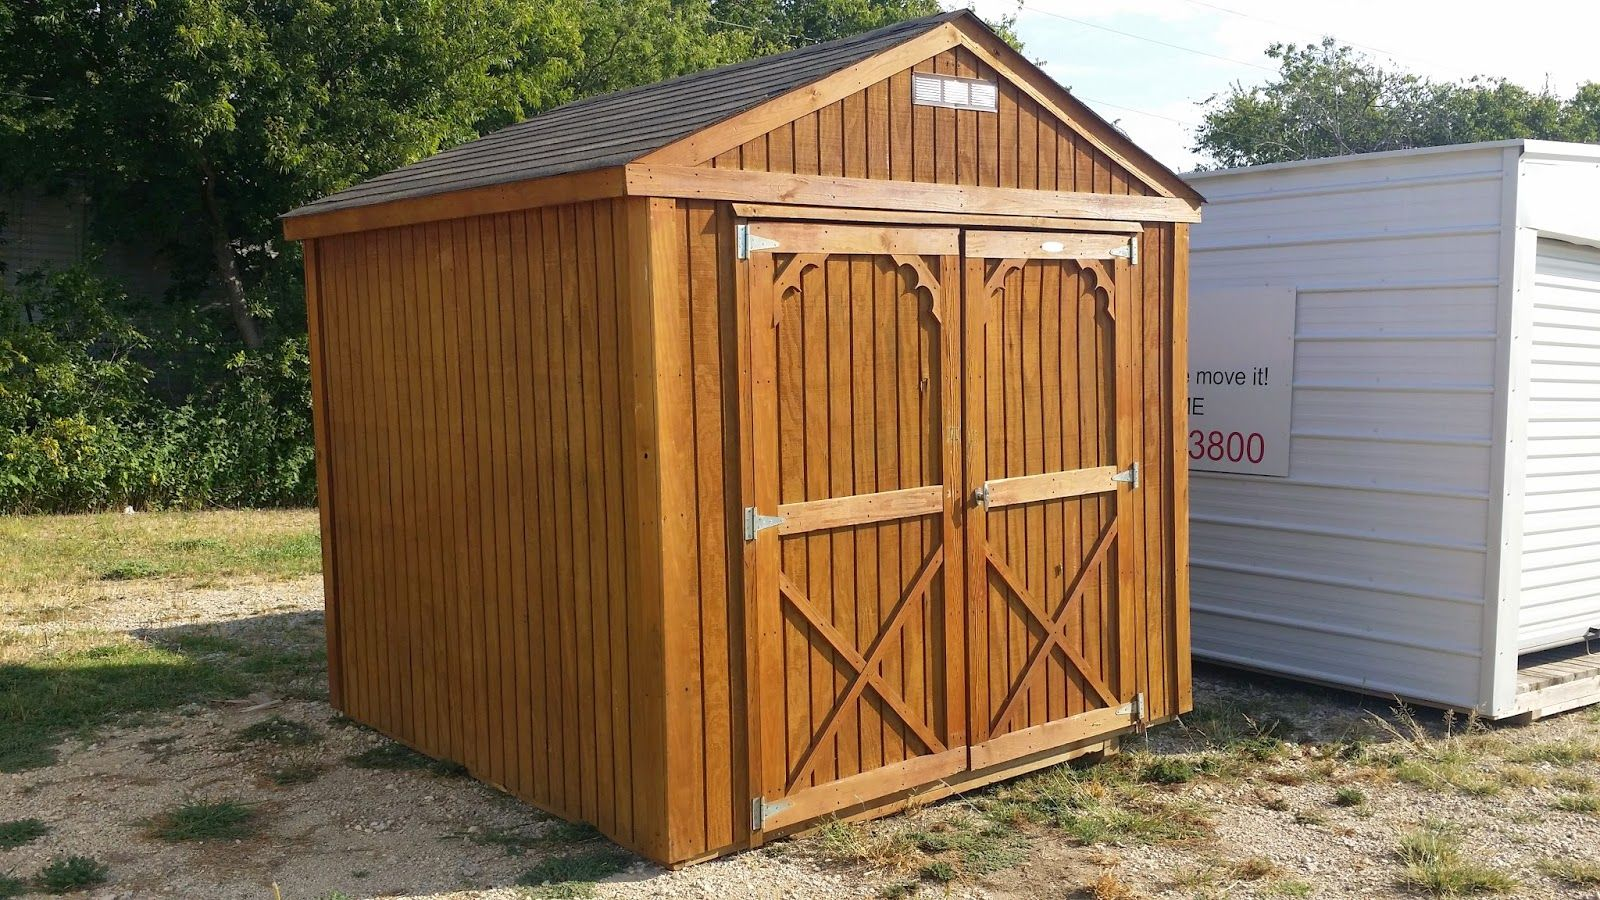 Merveilleux Fort Worth Lelandu0027s: 8u0027x 8u0027 Repo Utility Shed On Sale. Rent To Own, Or .